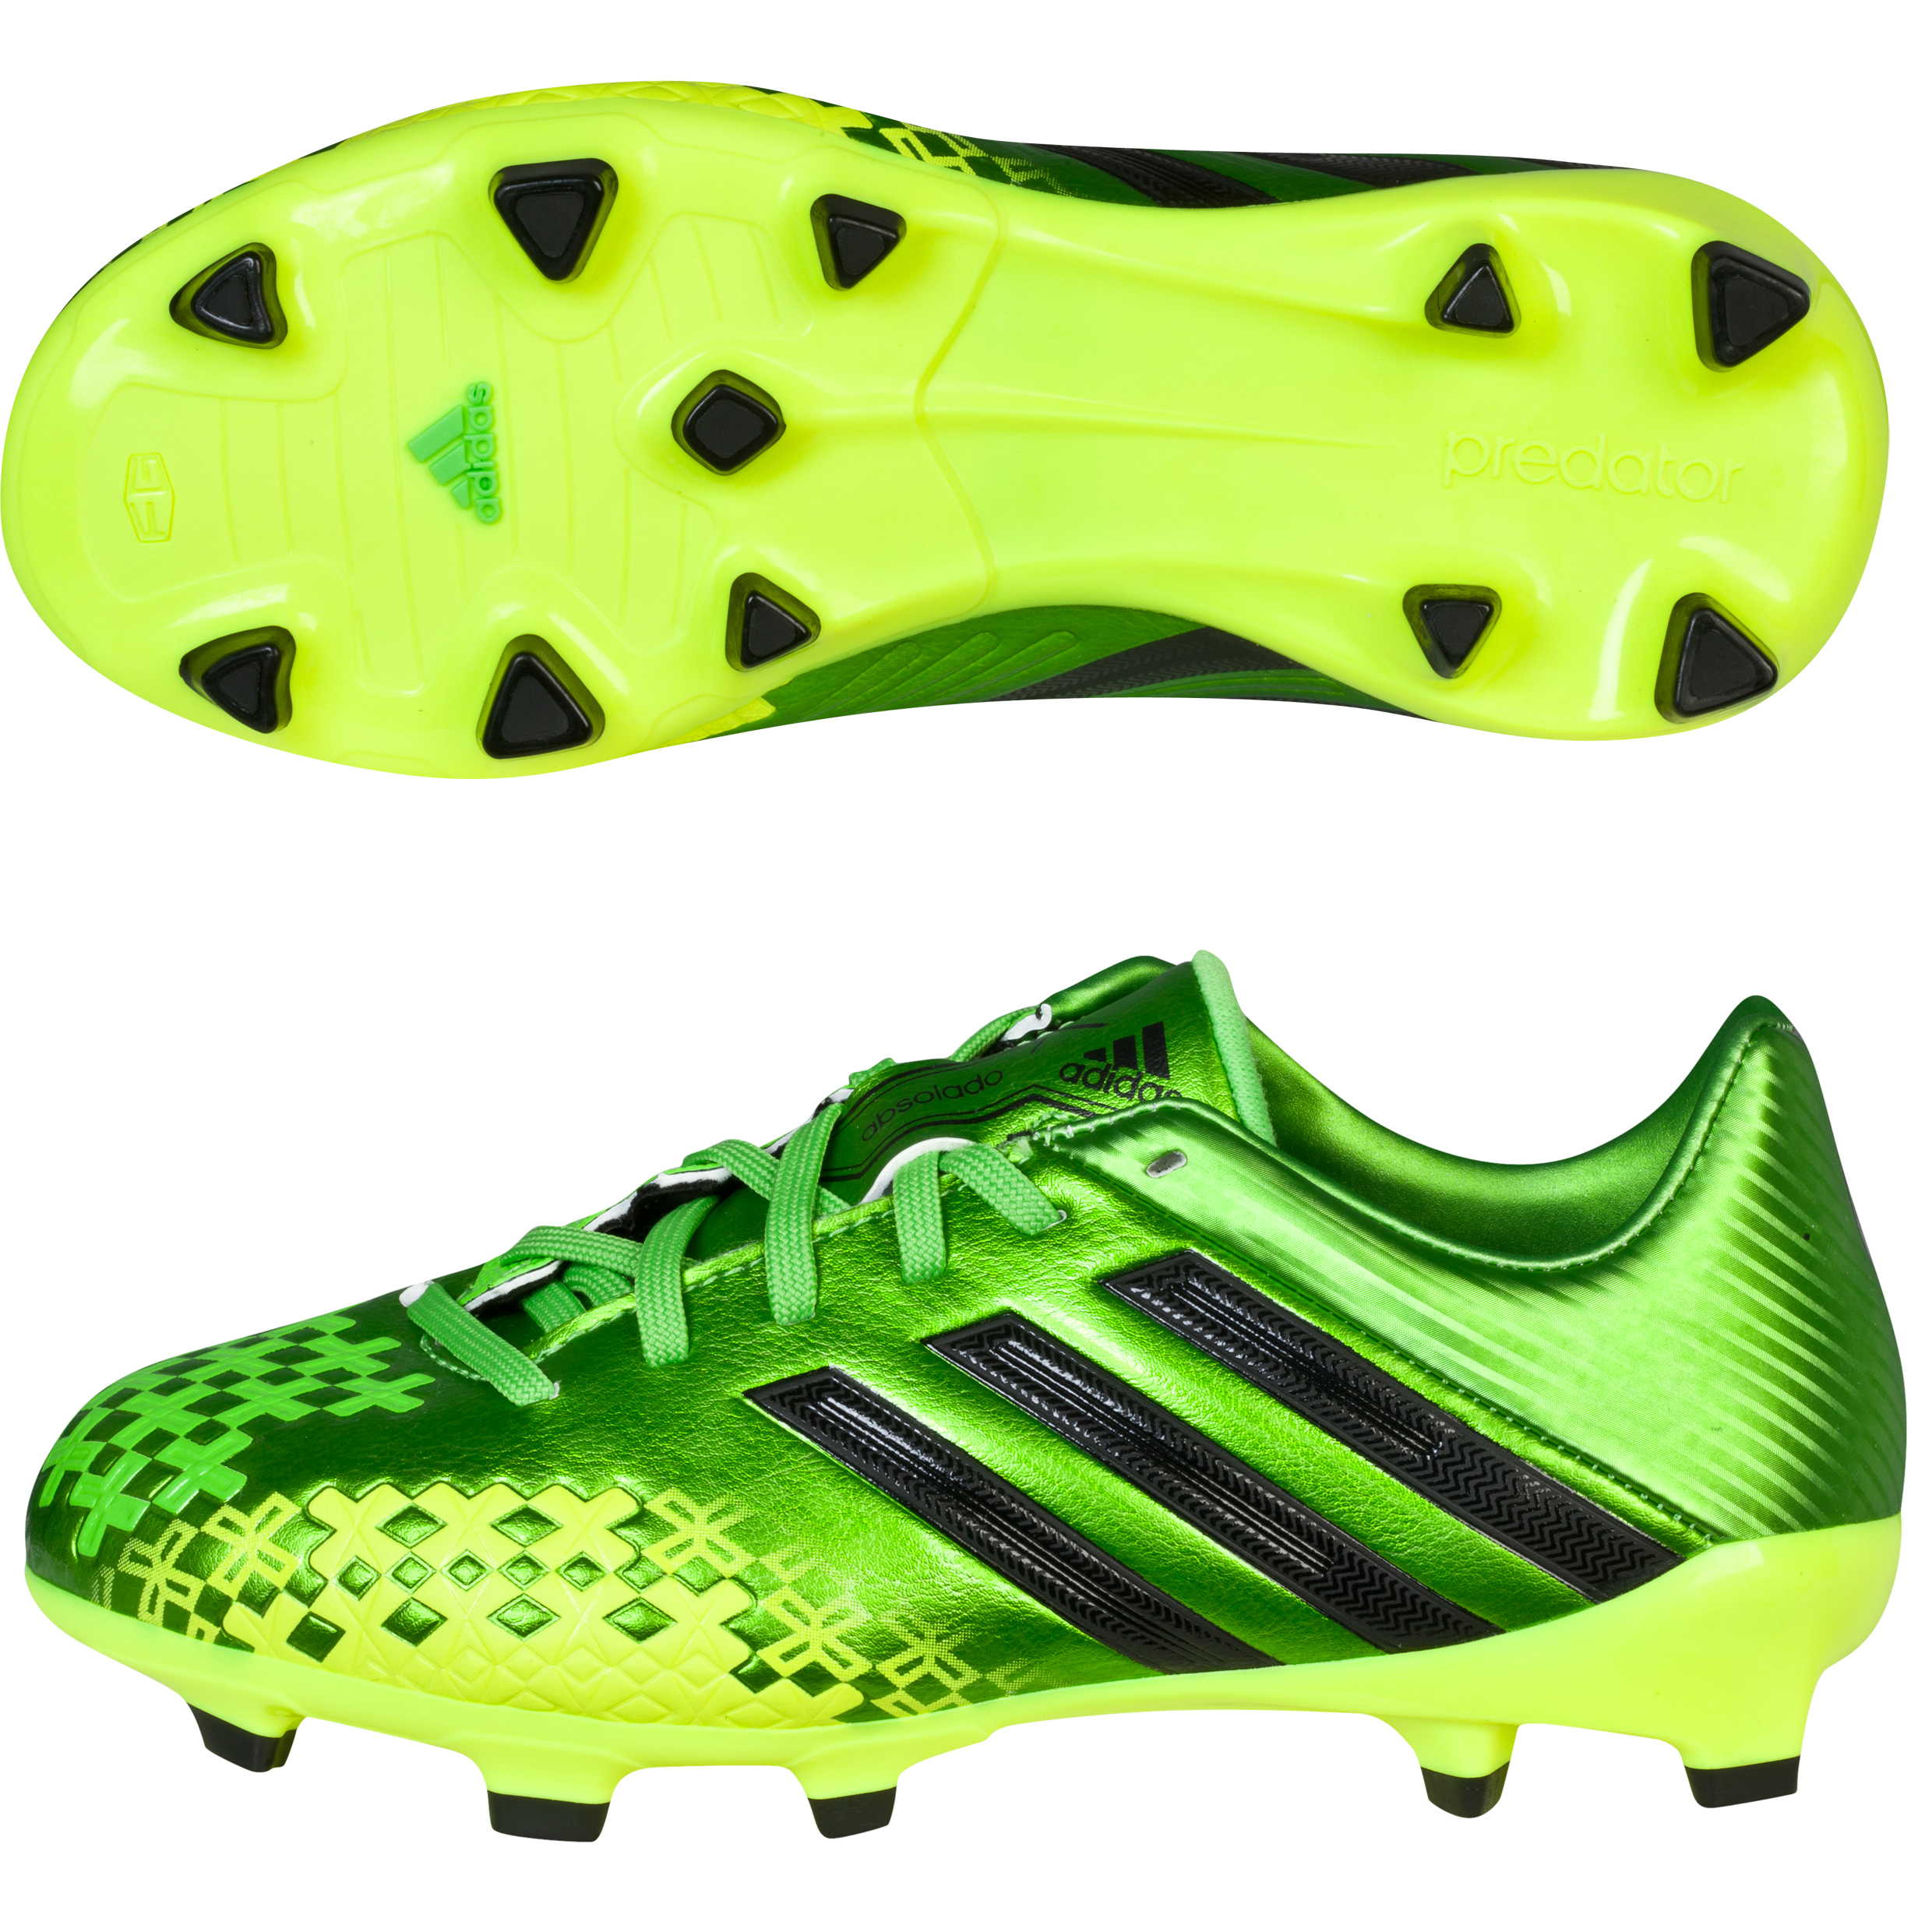 Adidas Predator Absolado LZ TRX Firm Ground Football Boots Green